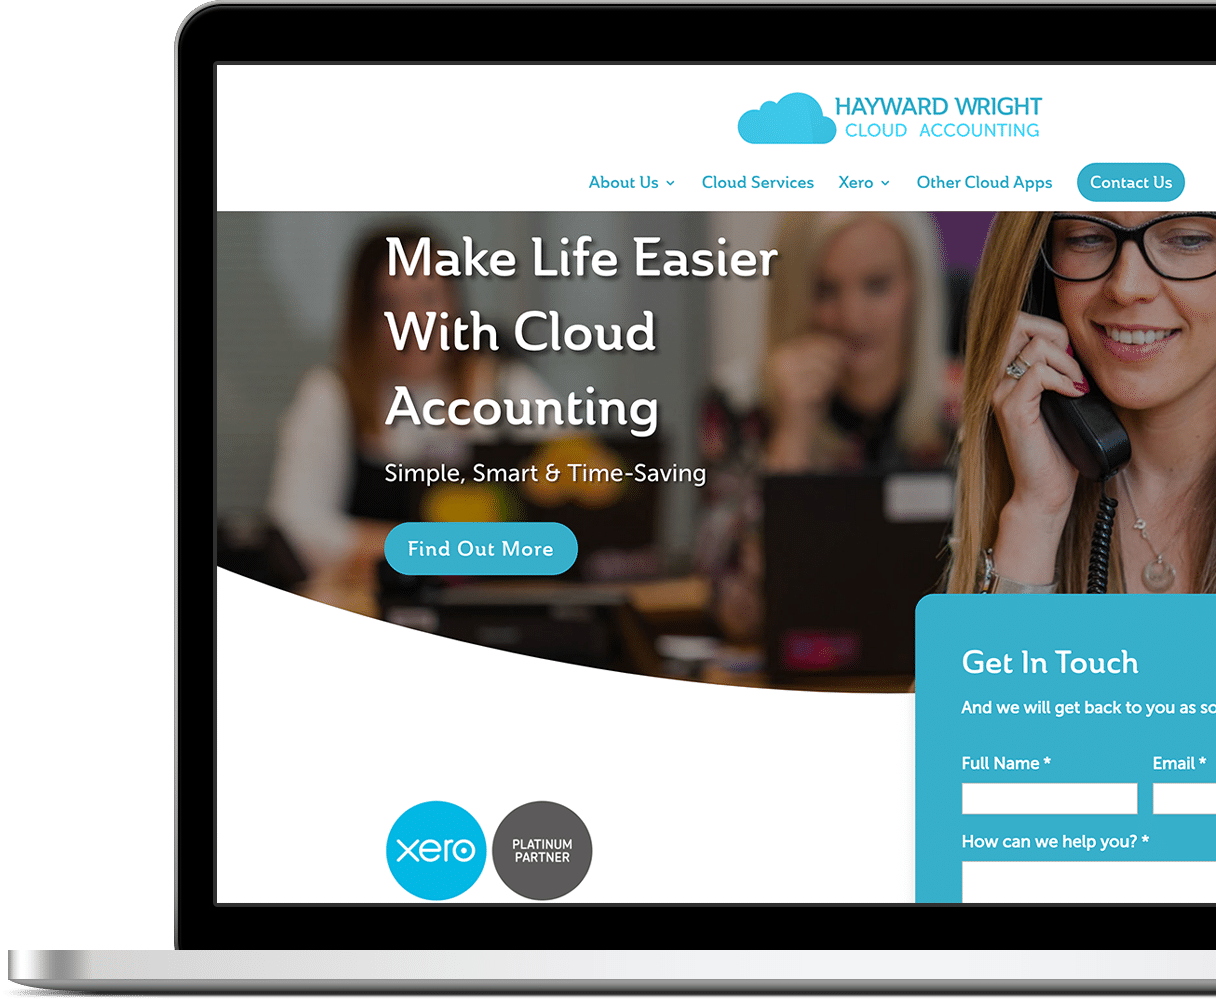 hayward wright cloud accounting business branding website on laptop showing home page